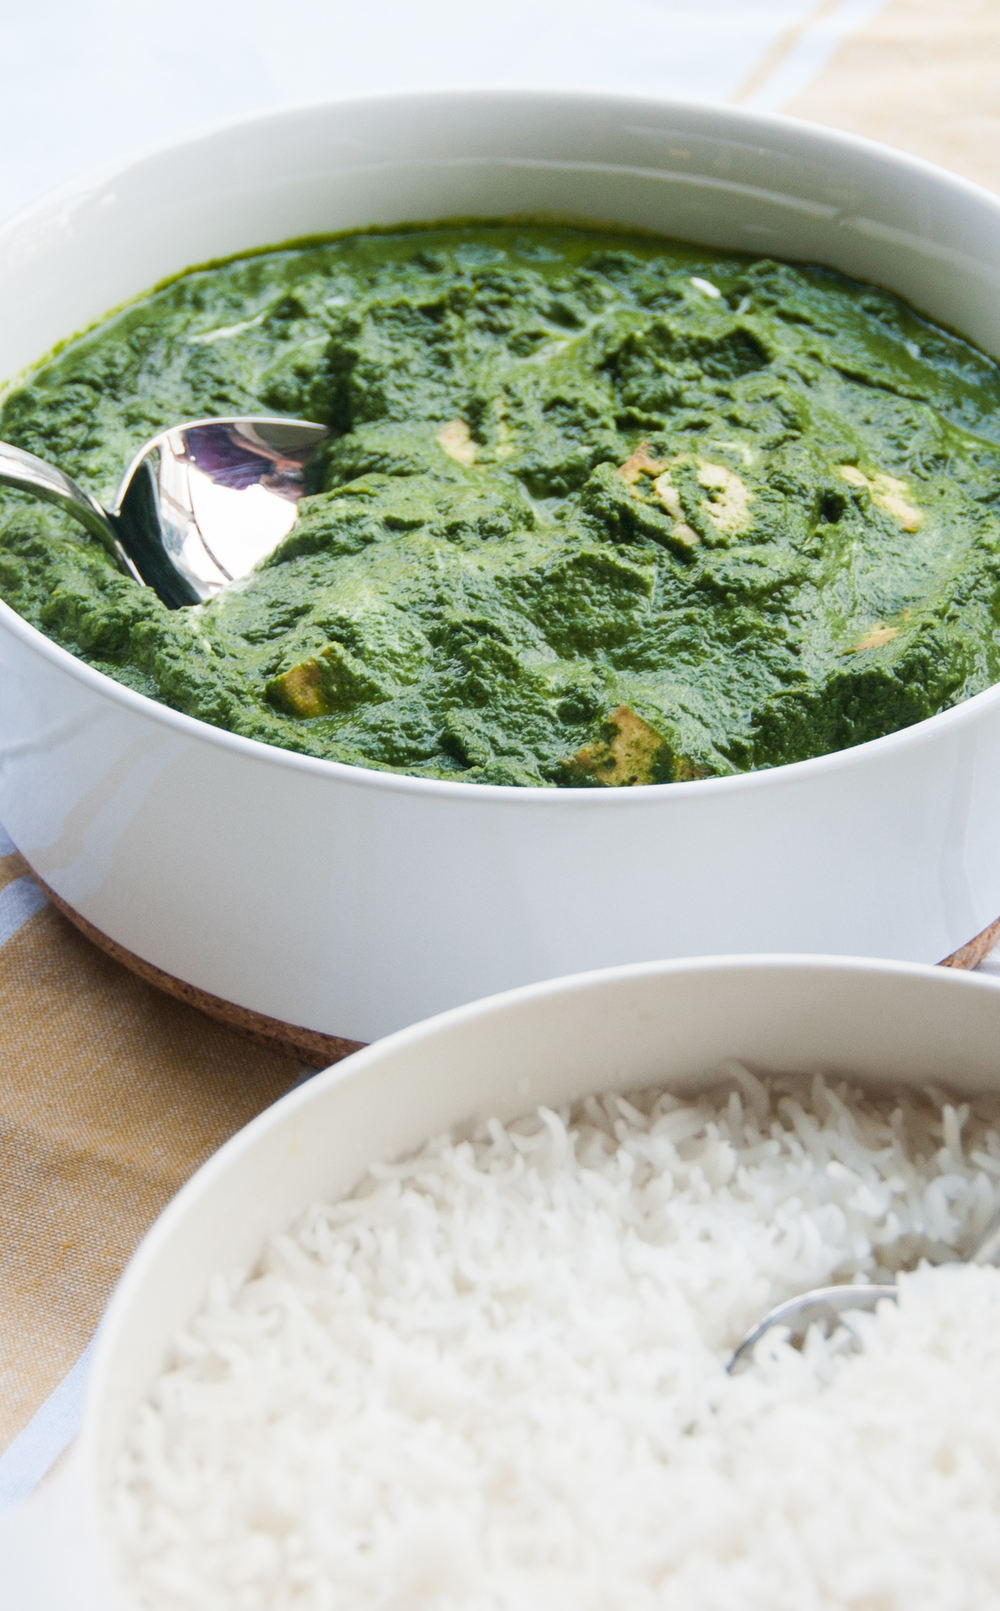 Palak tofu, a healthy recipe with tofu dipped in a deliciously green spinach based gravy.